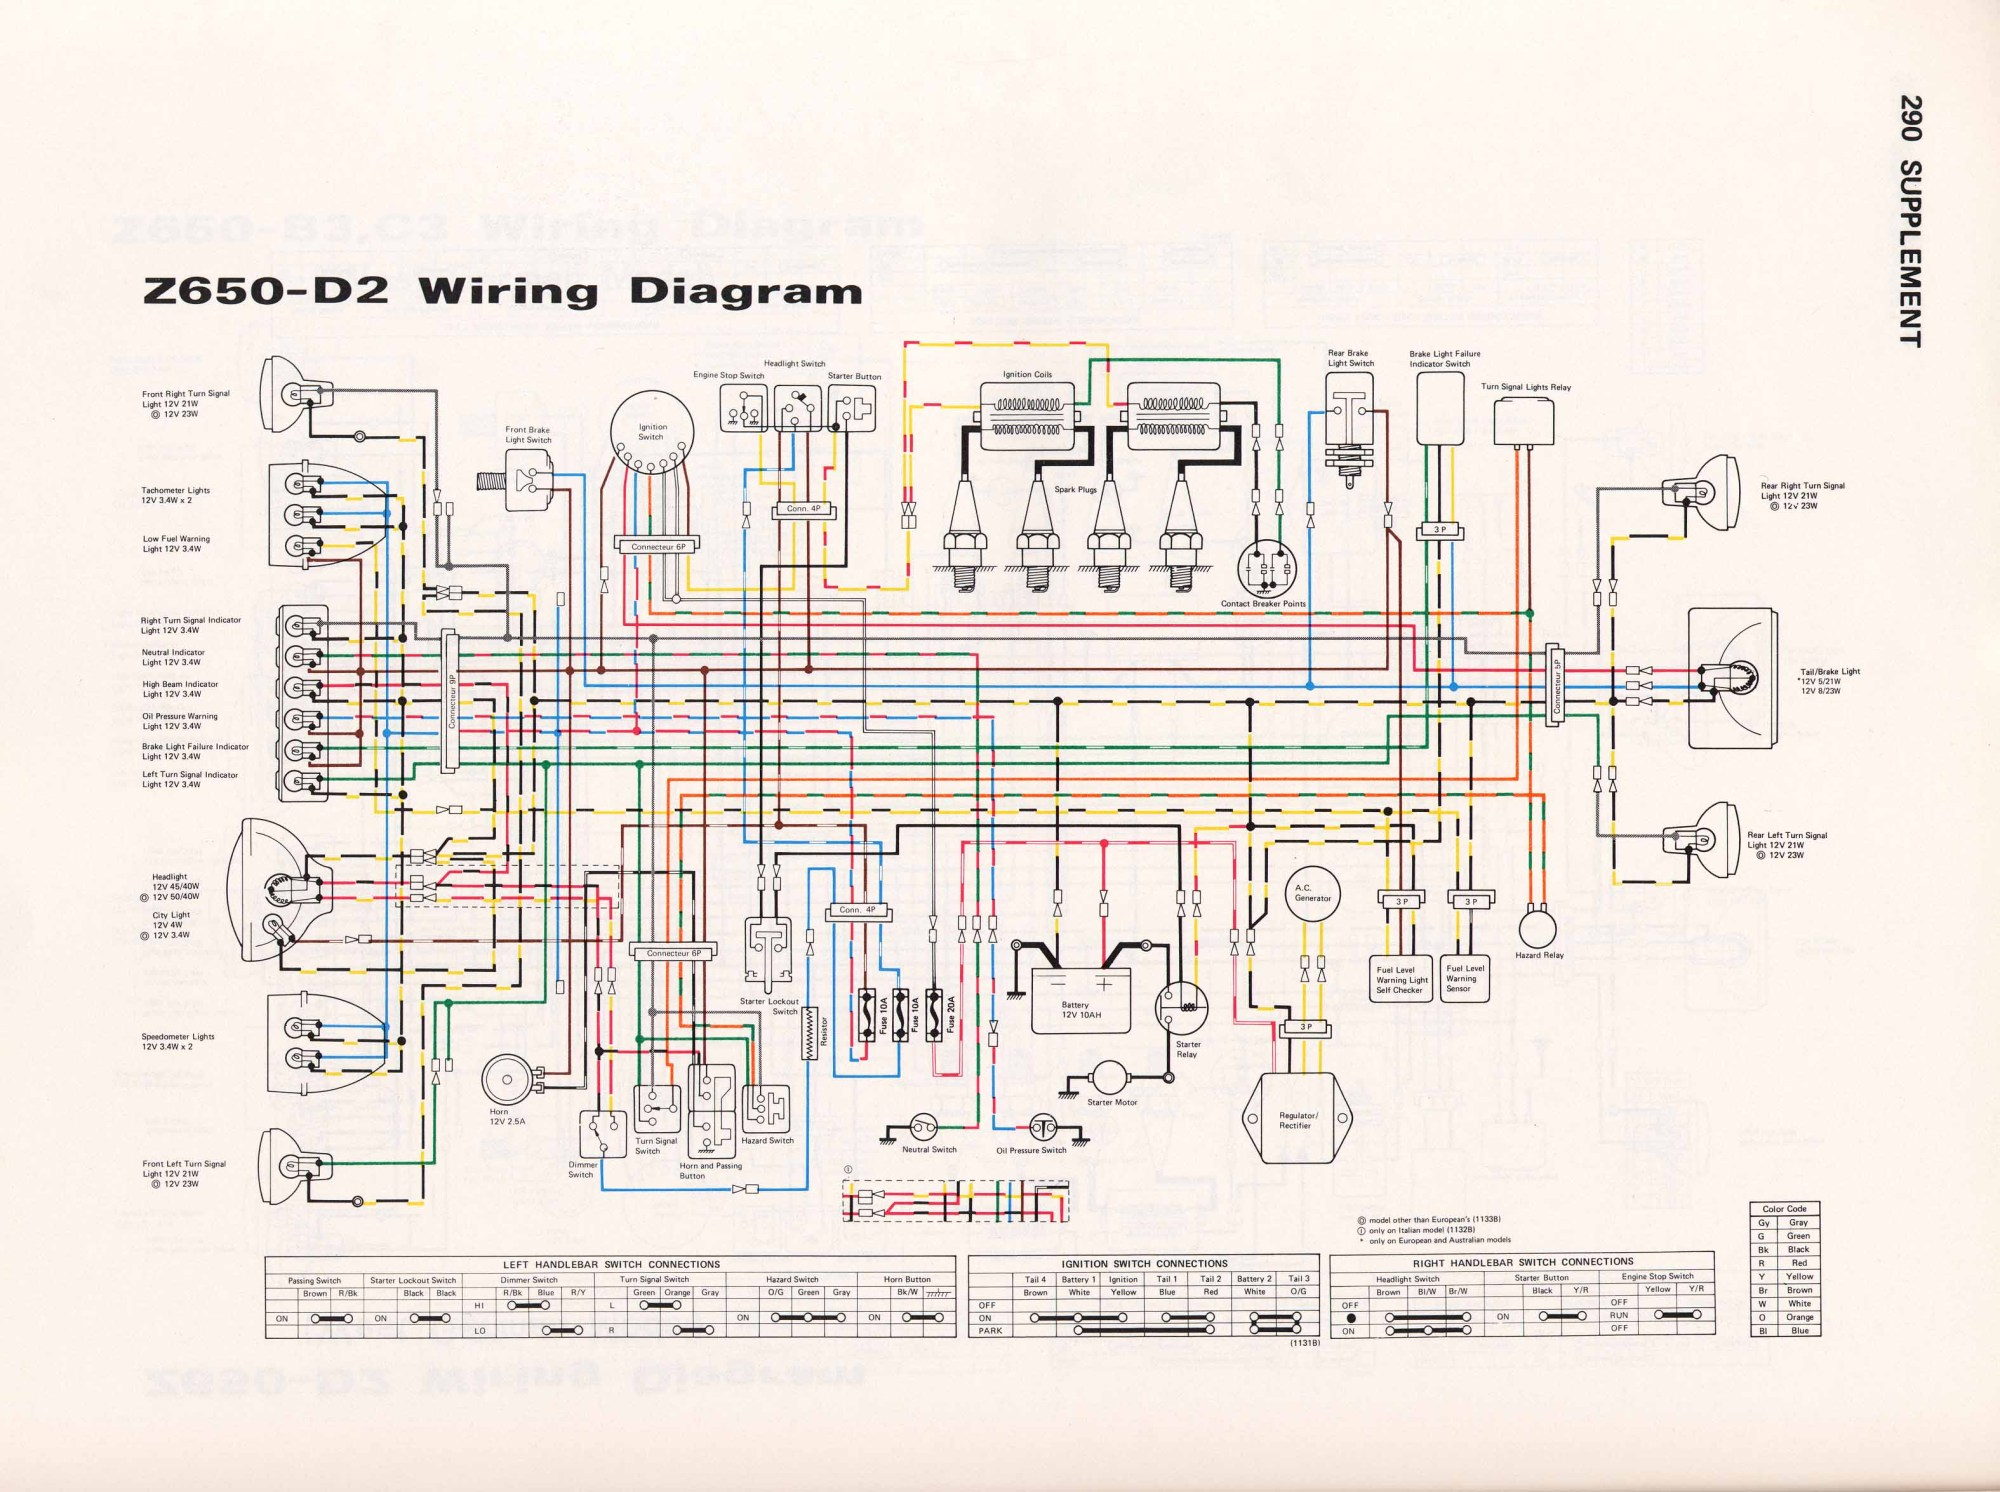 hight resolution of 1978 kawasaki z1000 wiring diagram wiring diagram todays 1971 vw karmann ghia wiring diagram 1979 kawasaki kz1000 wiring diagram